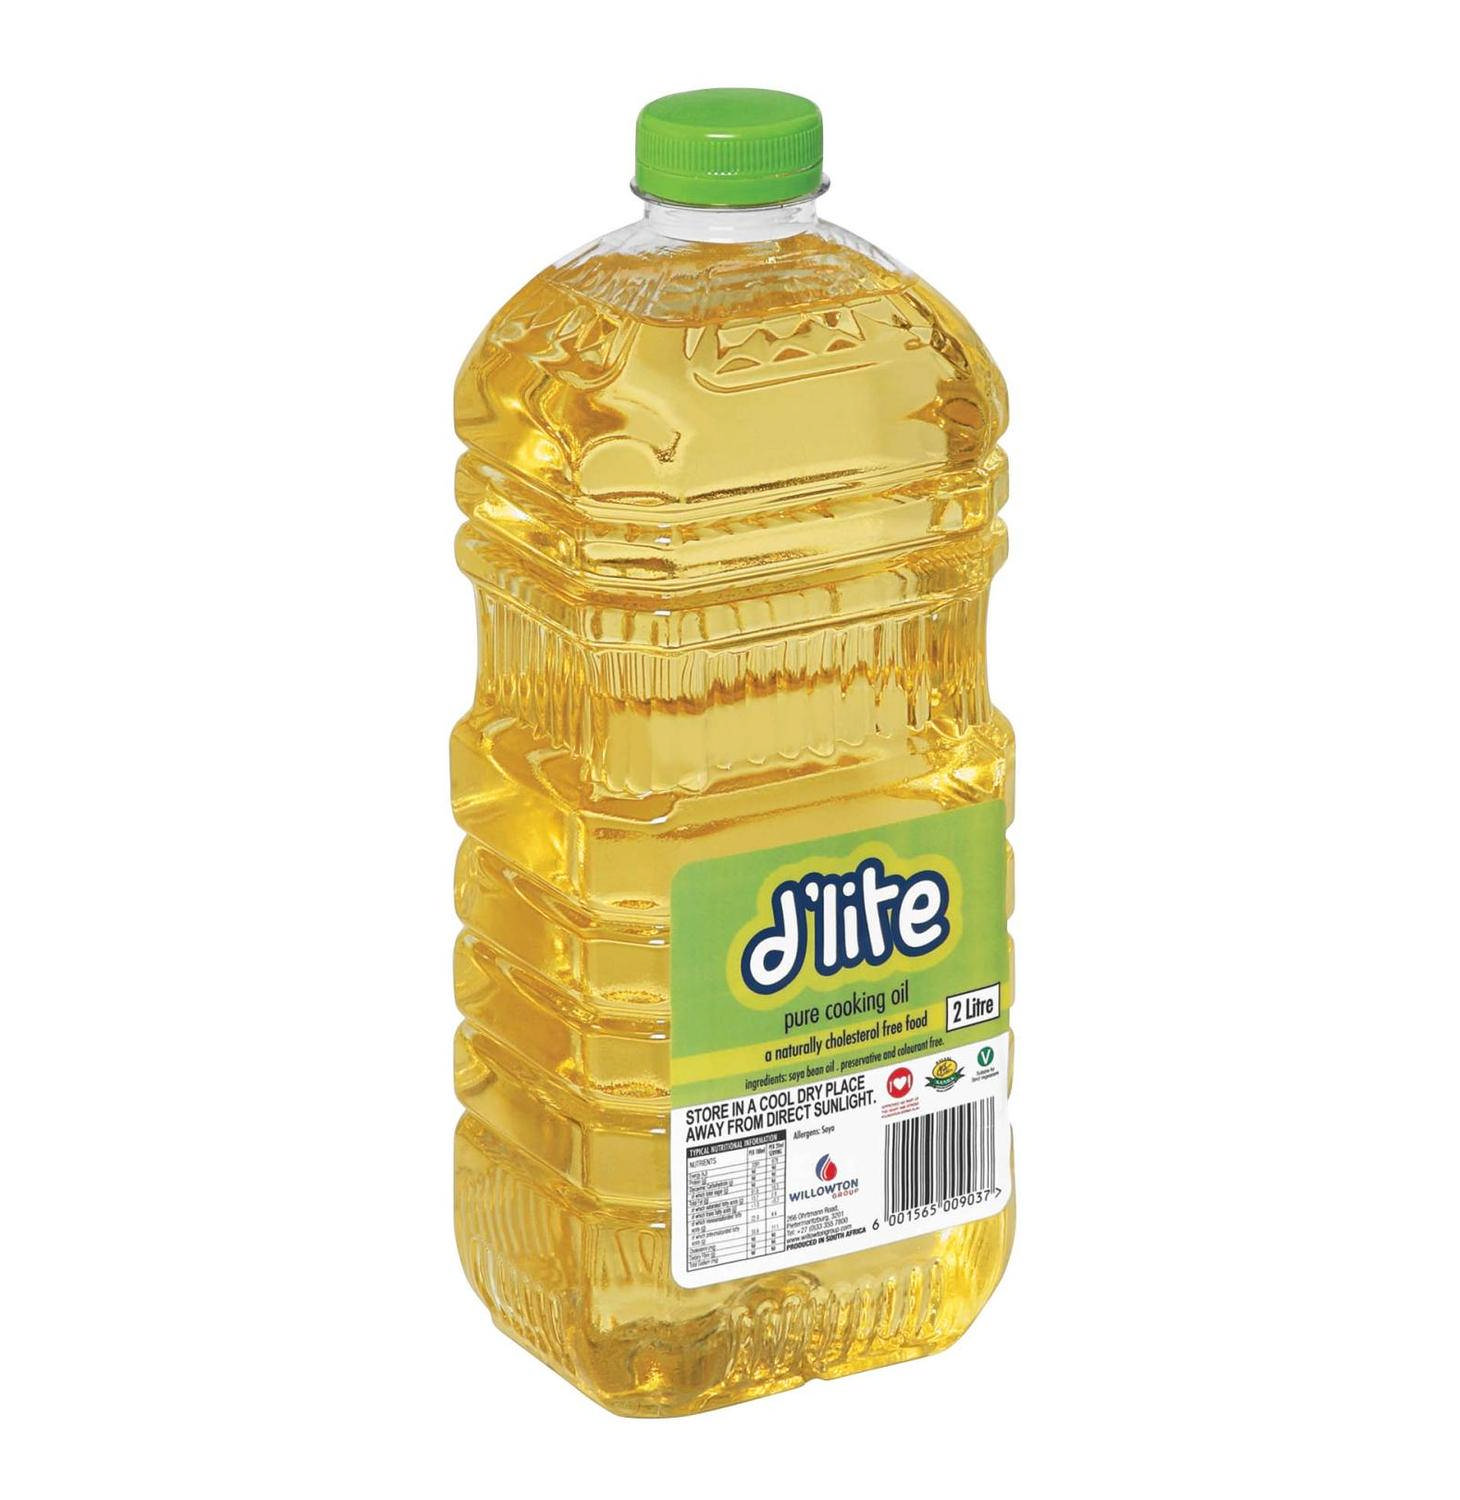 D lite soyabean cooking oil